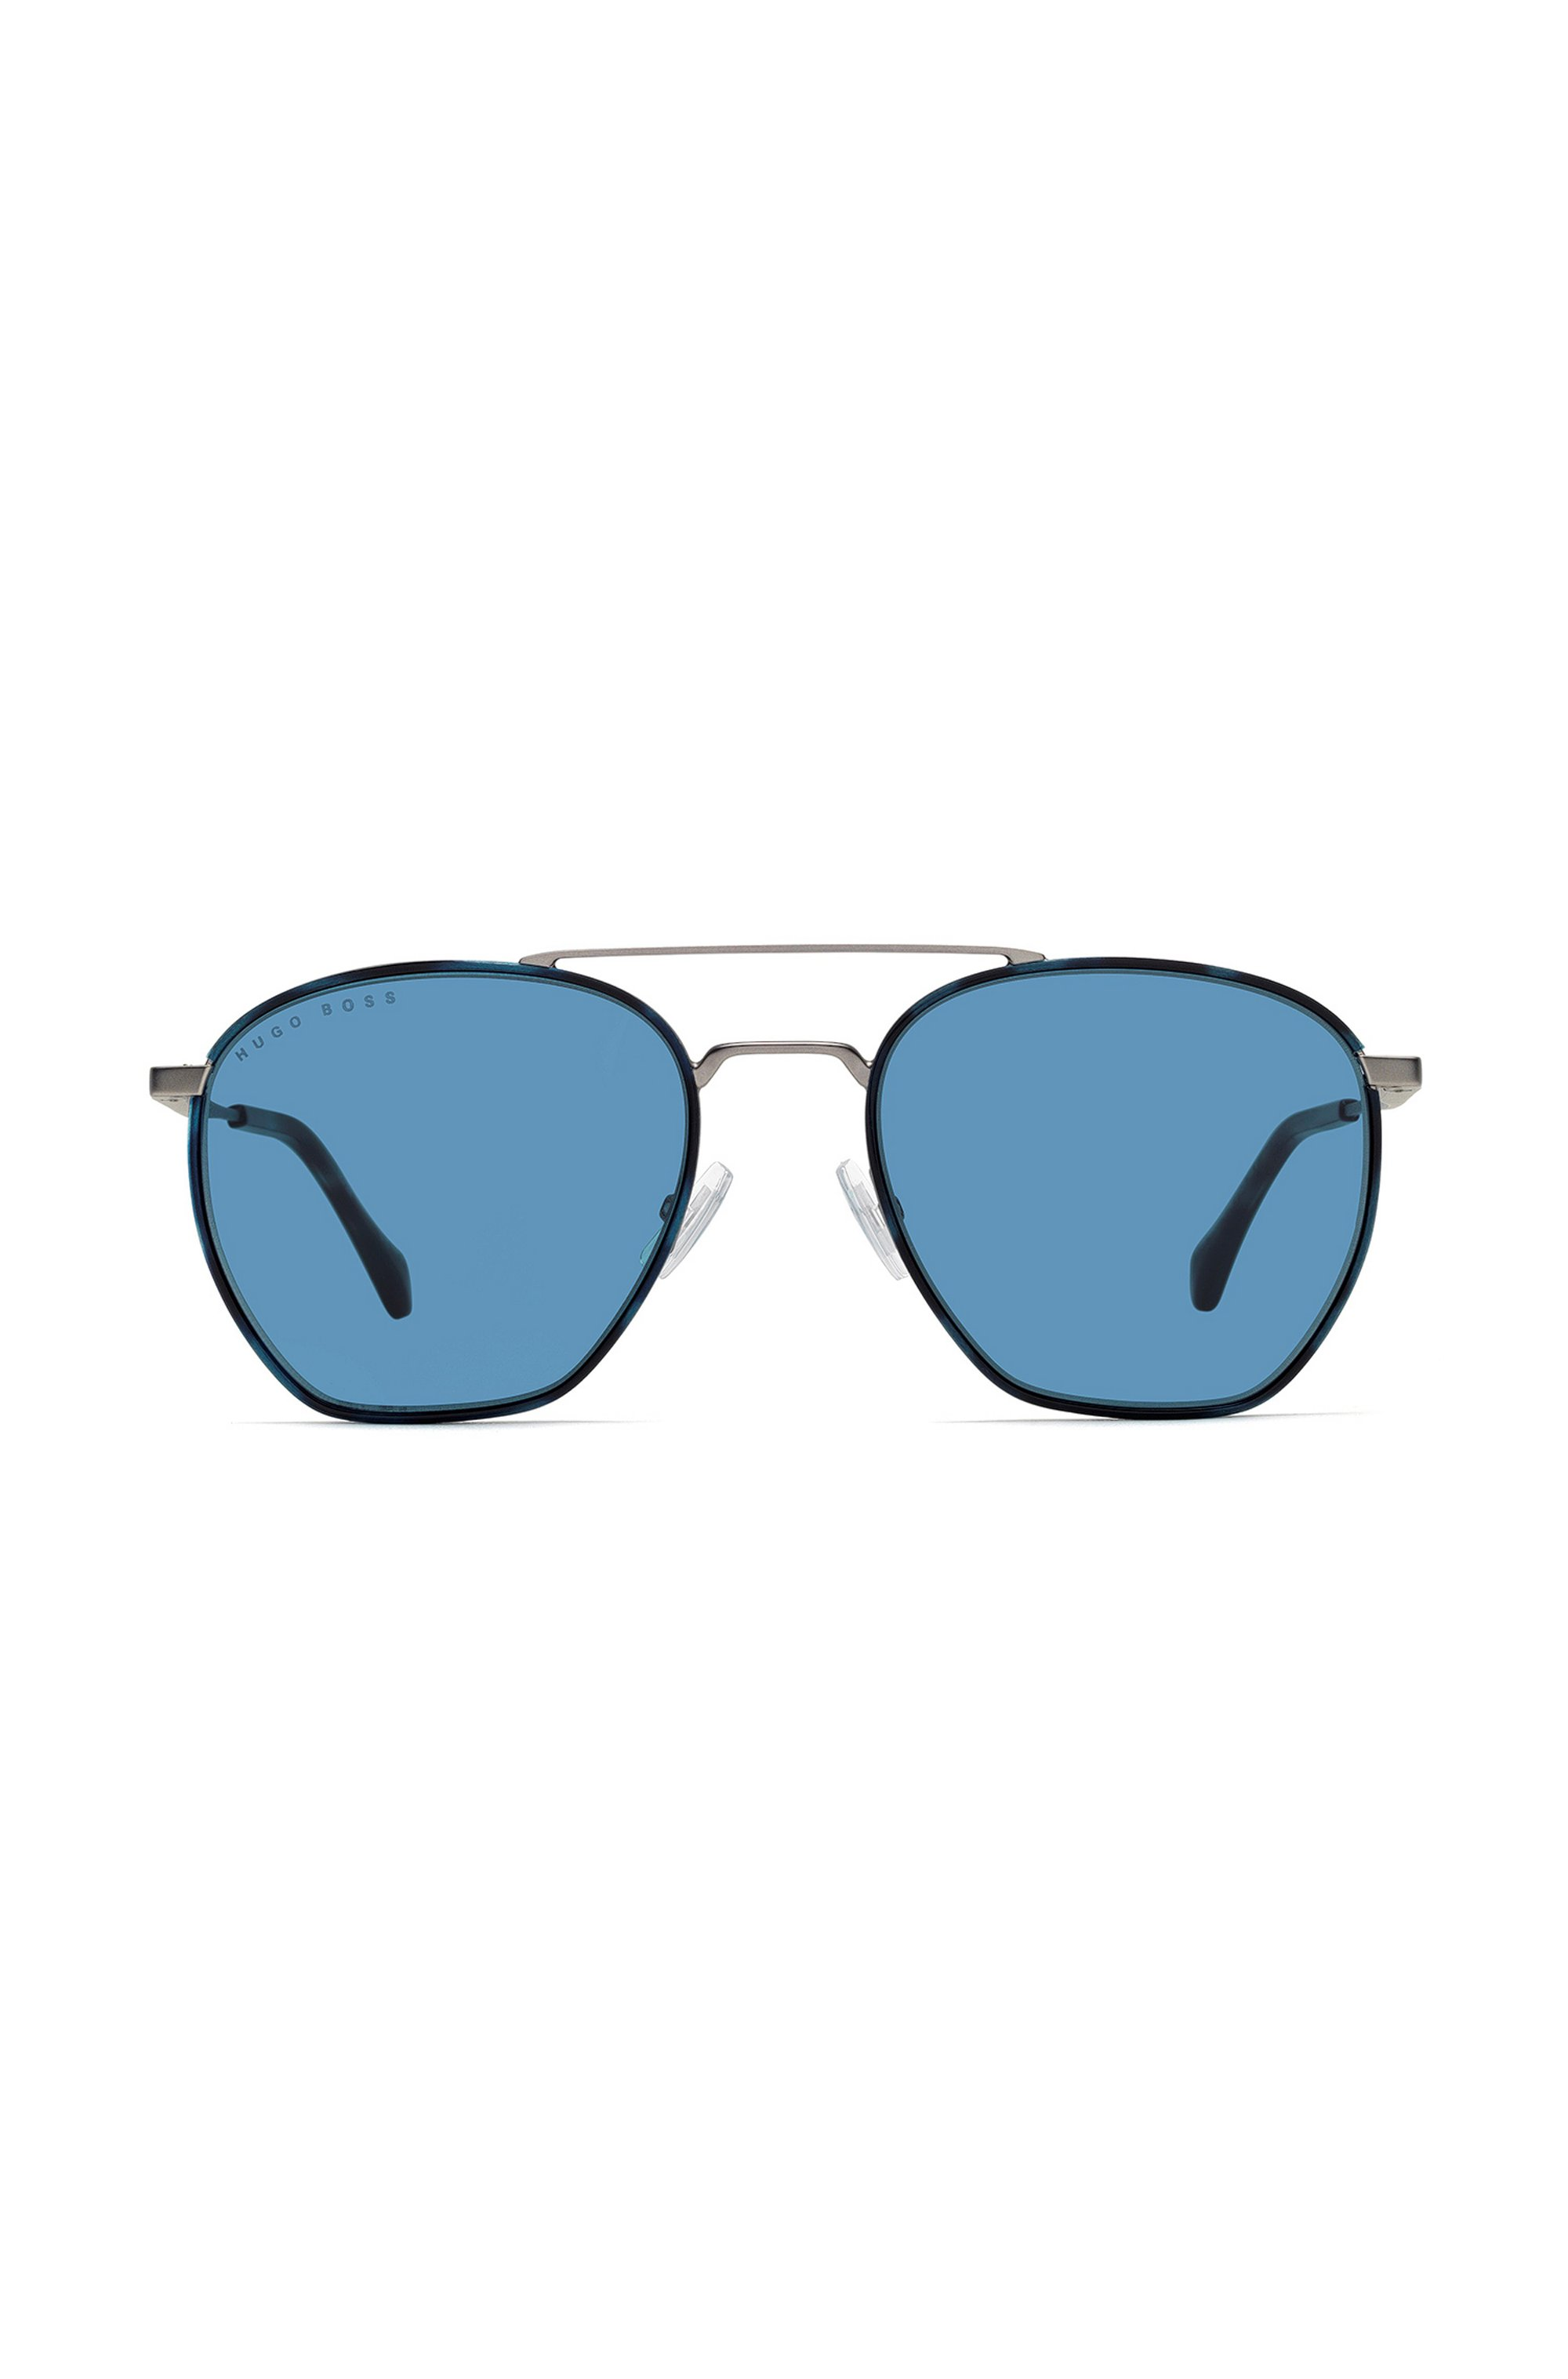 Windsor-rim sunglasses with 3D temples and tonal logo